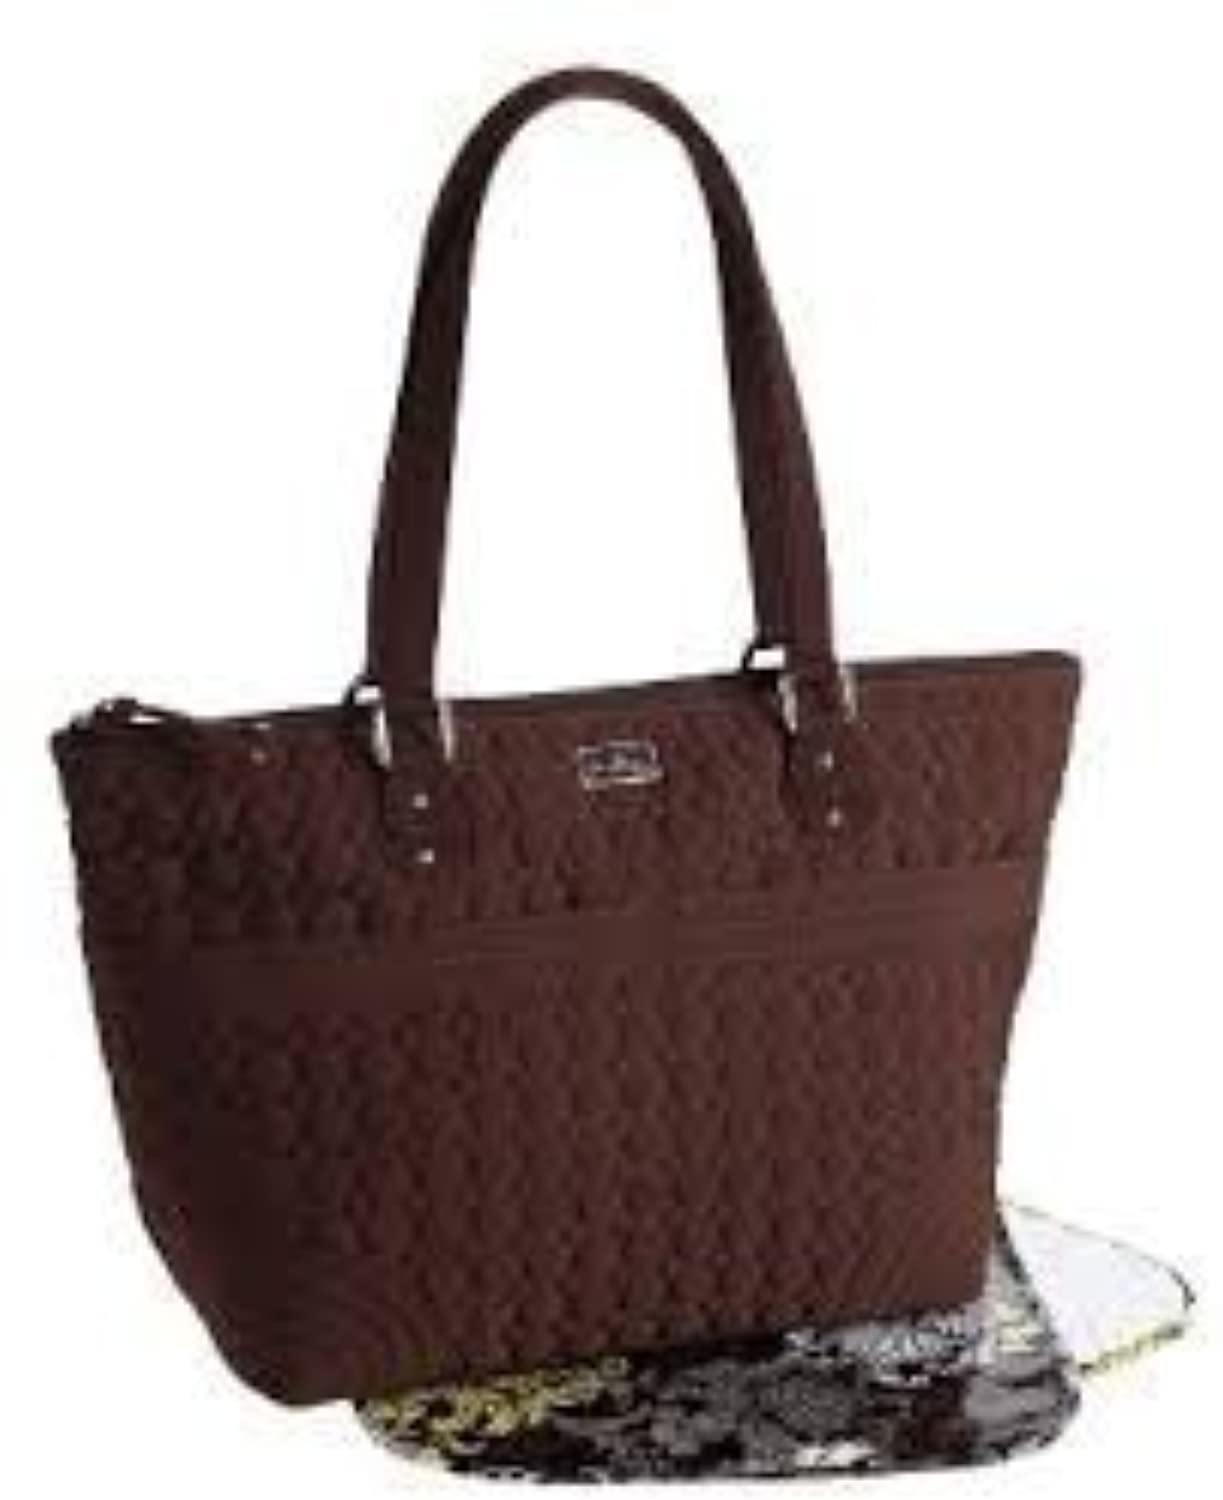 Vera Bradley Microfiber Collection - Baby Bag in Espresso Brown by Vera Bradley [並行輸入品]